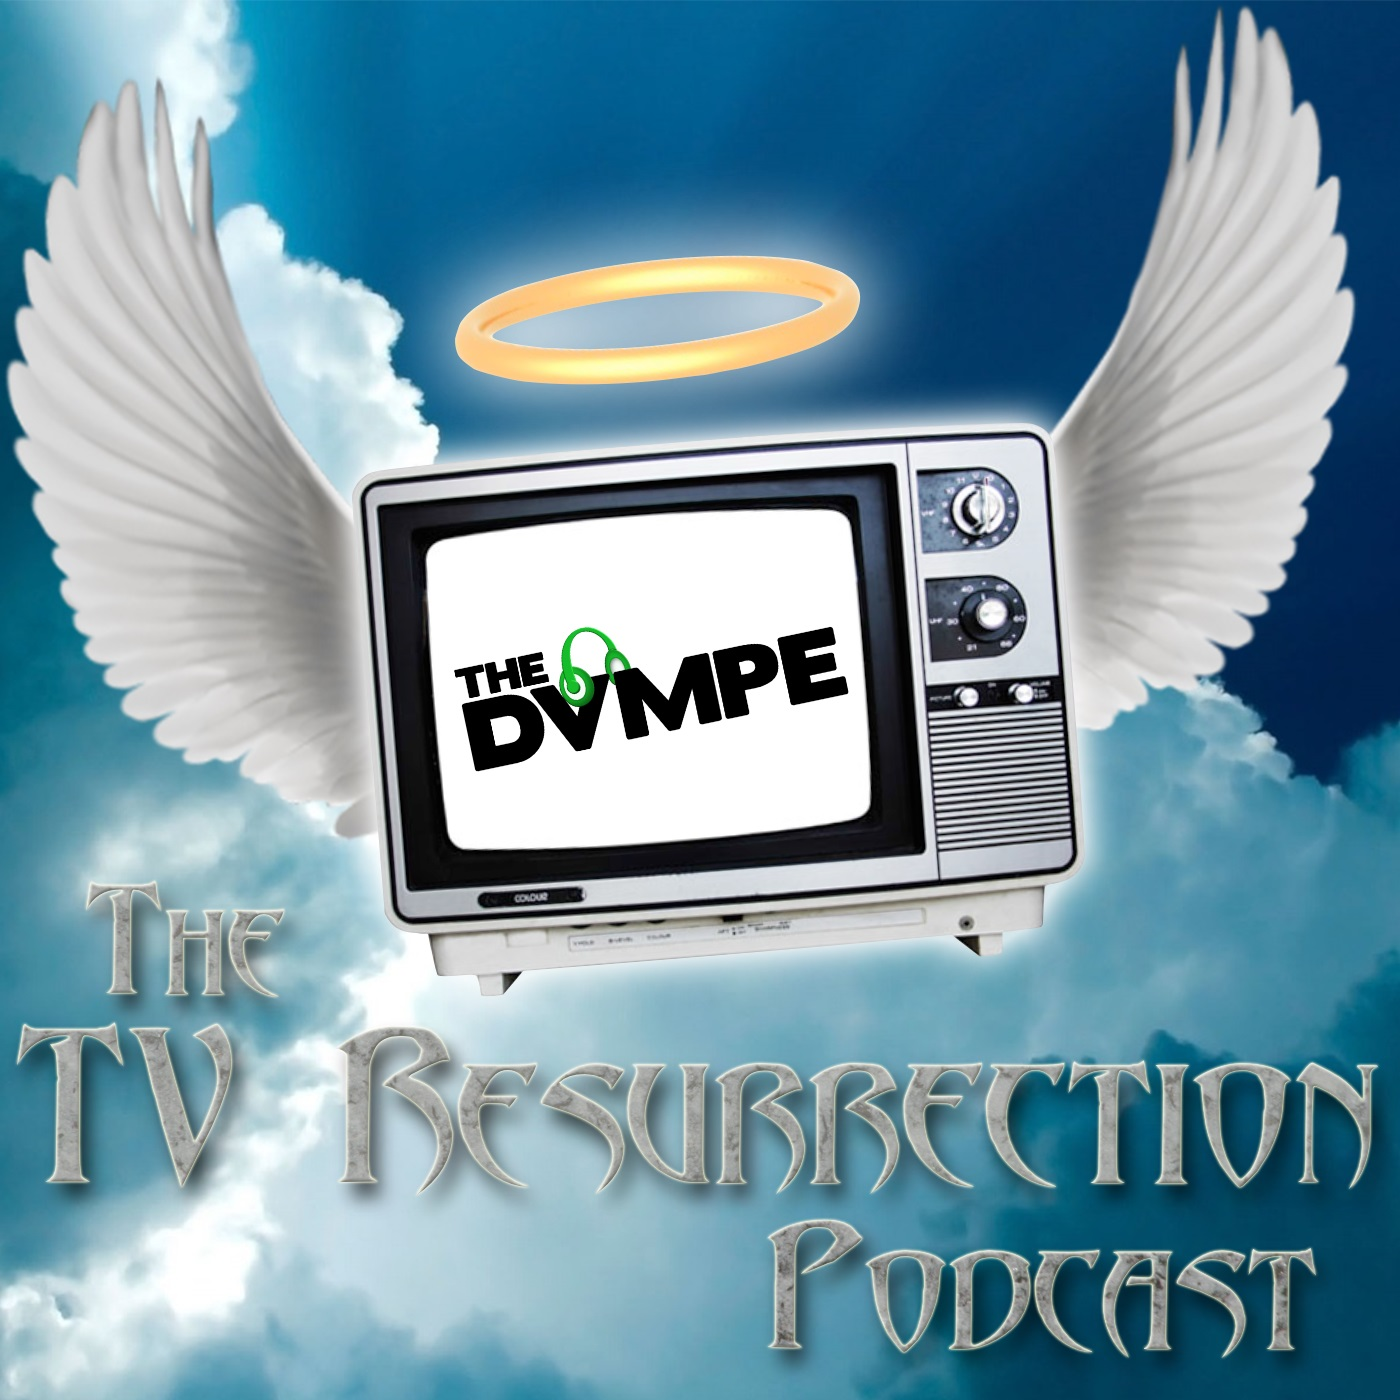 The TV Resurrection Podcast